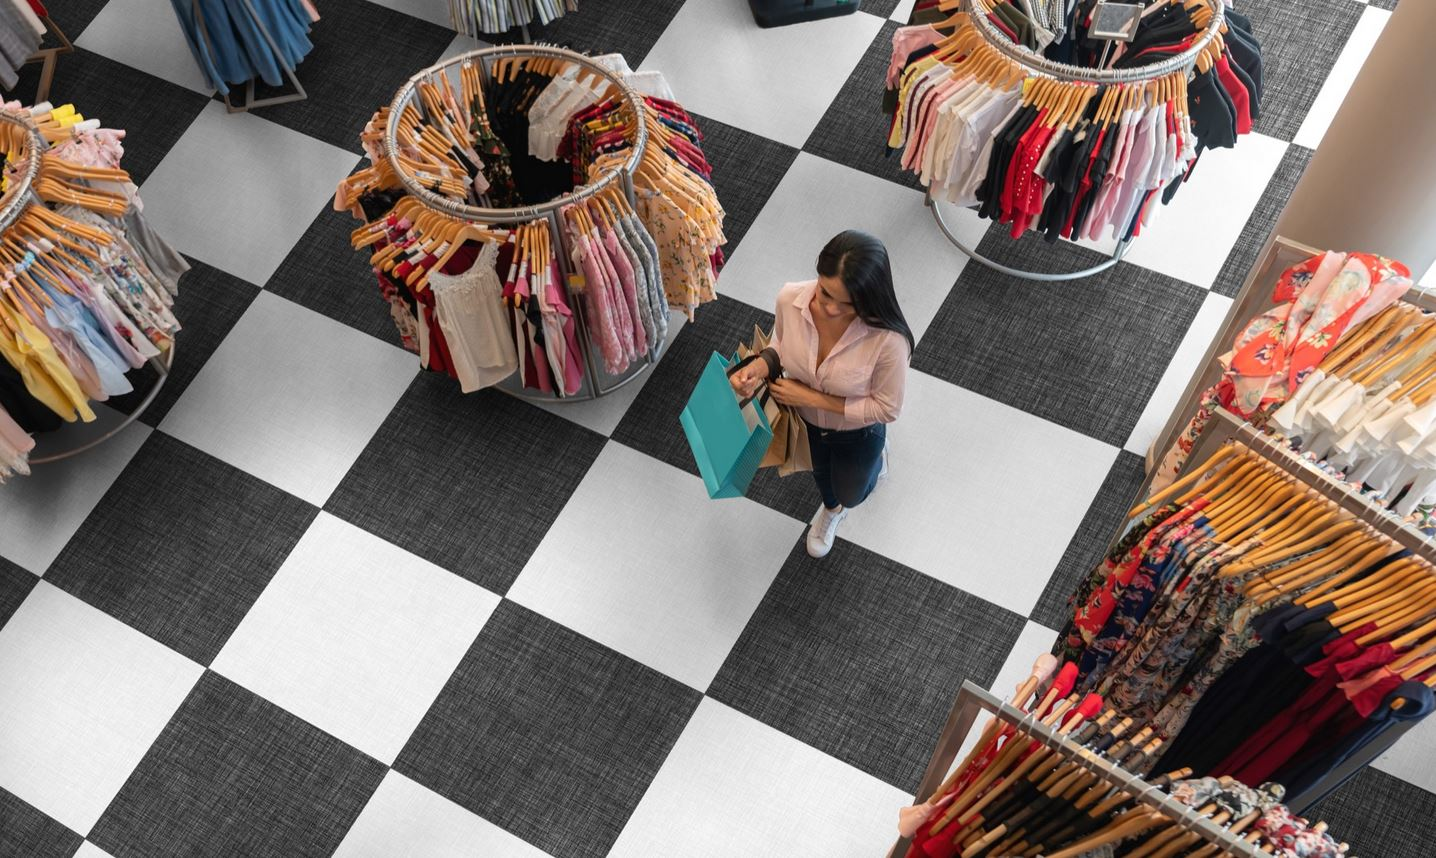 Image of clothing store floor